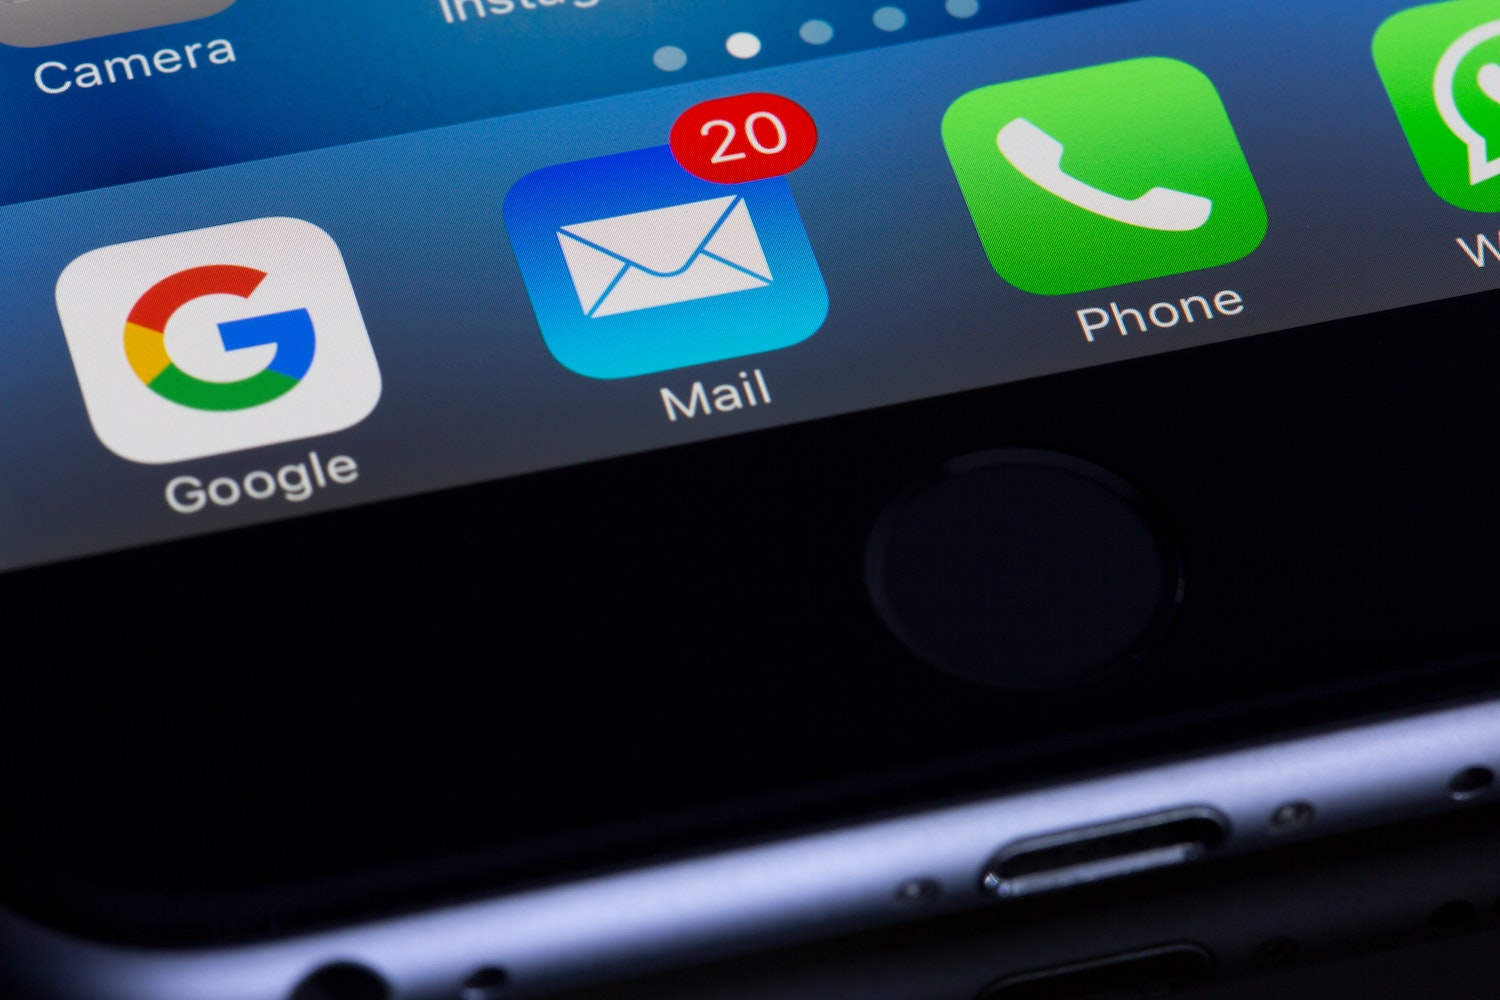 Black iPhone with home screen on, featuring Google, Mail, Phone